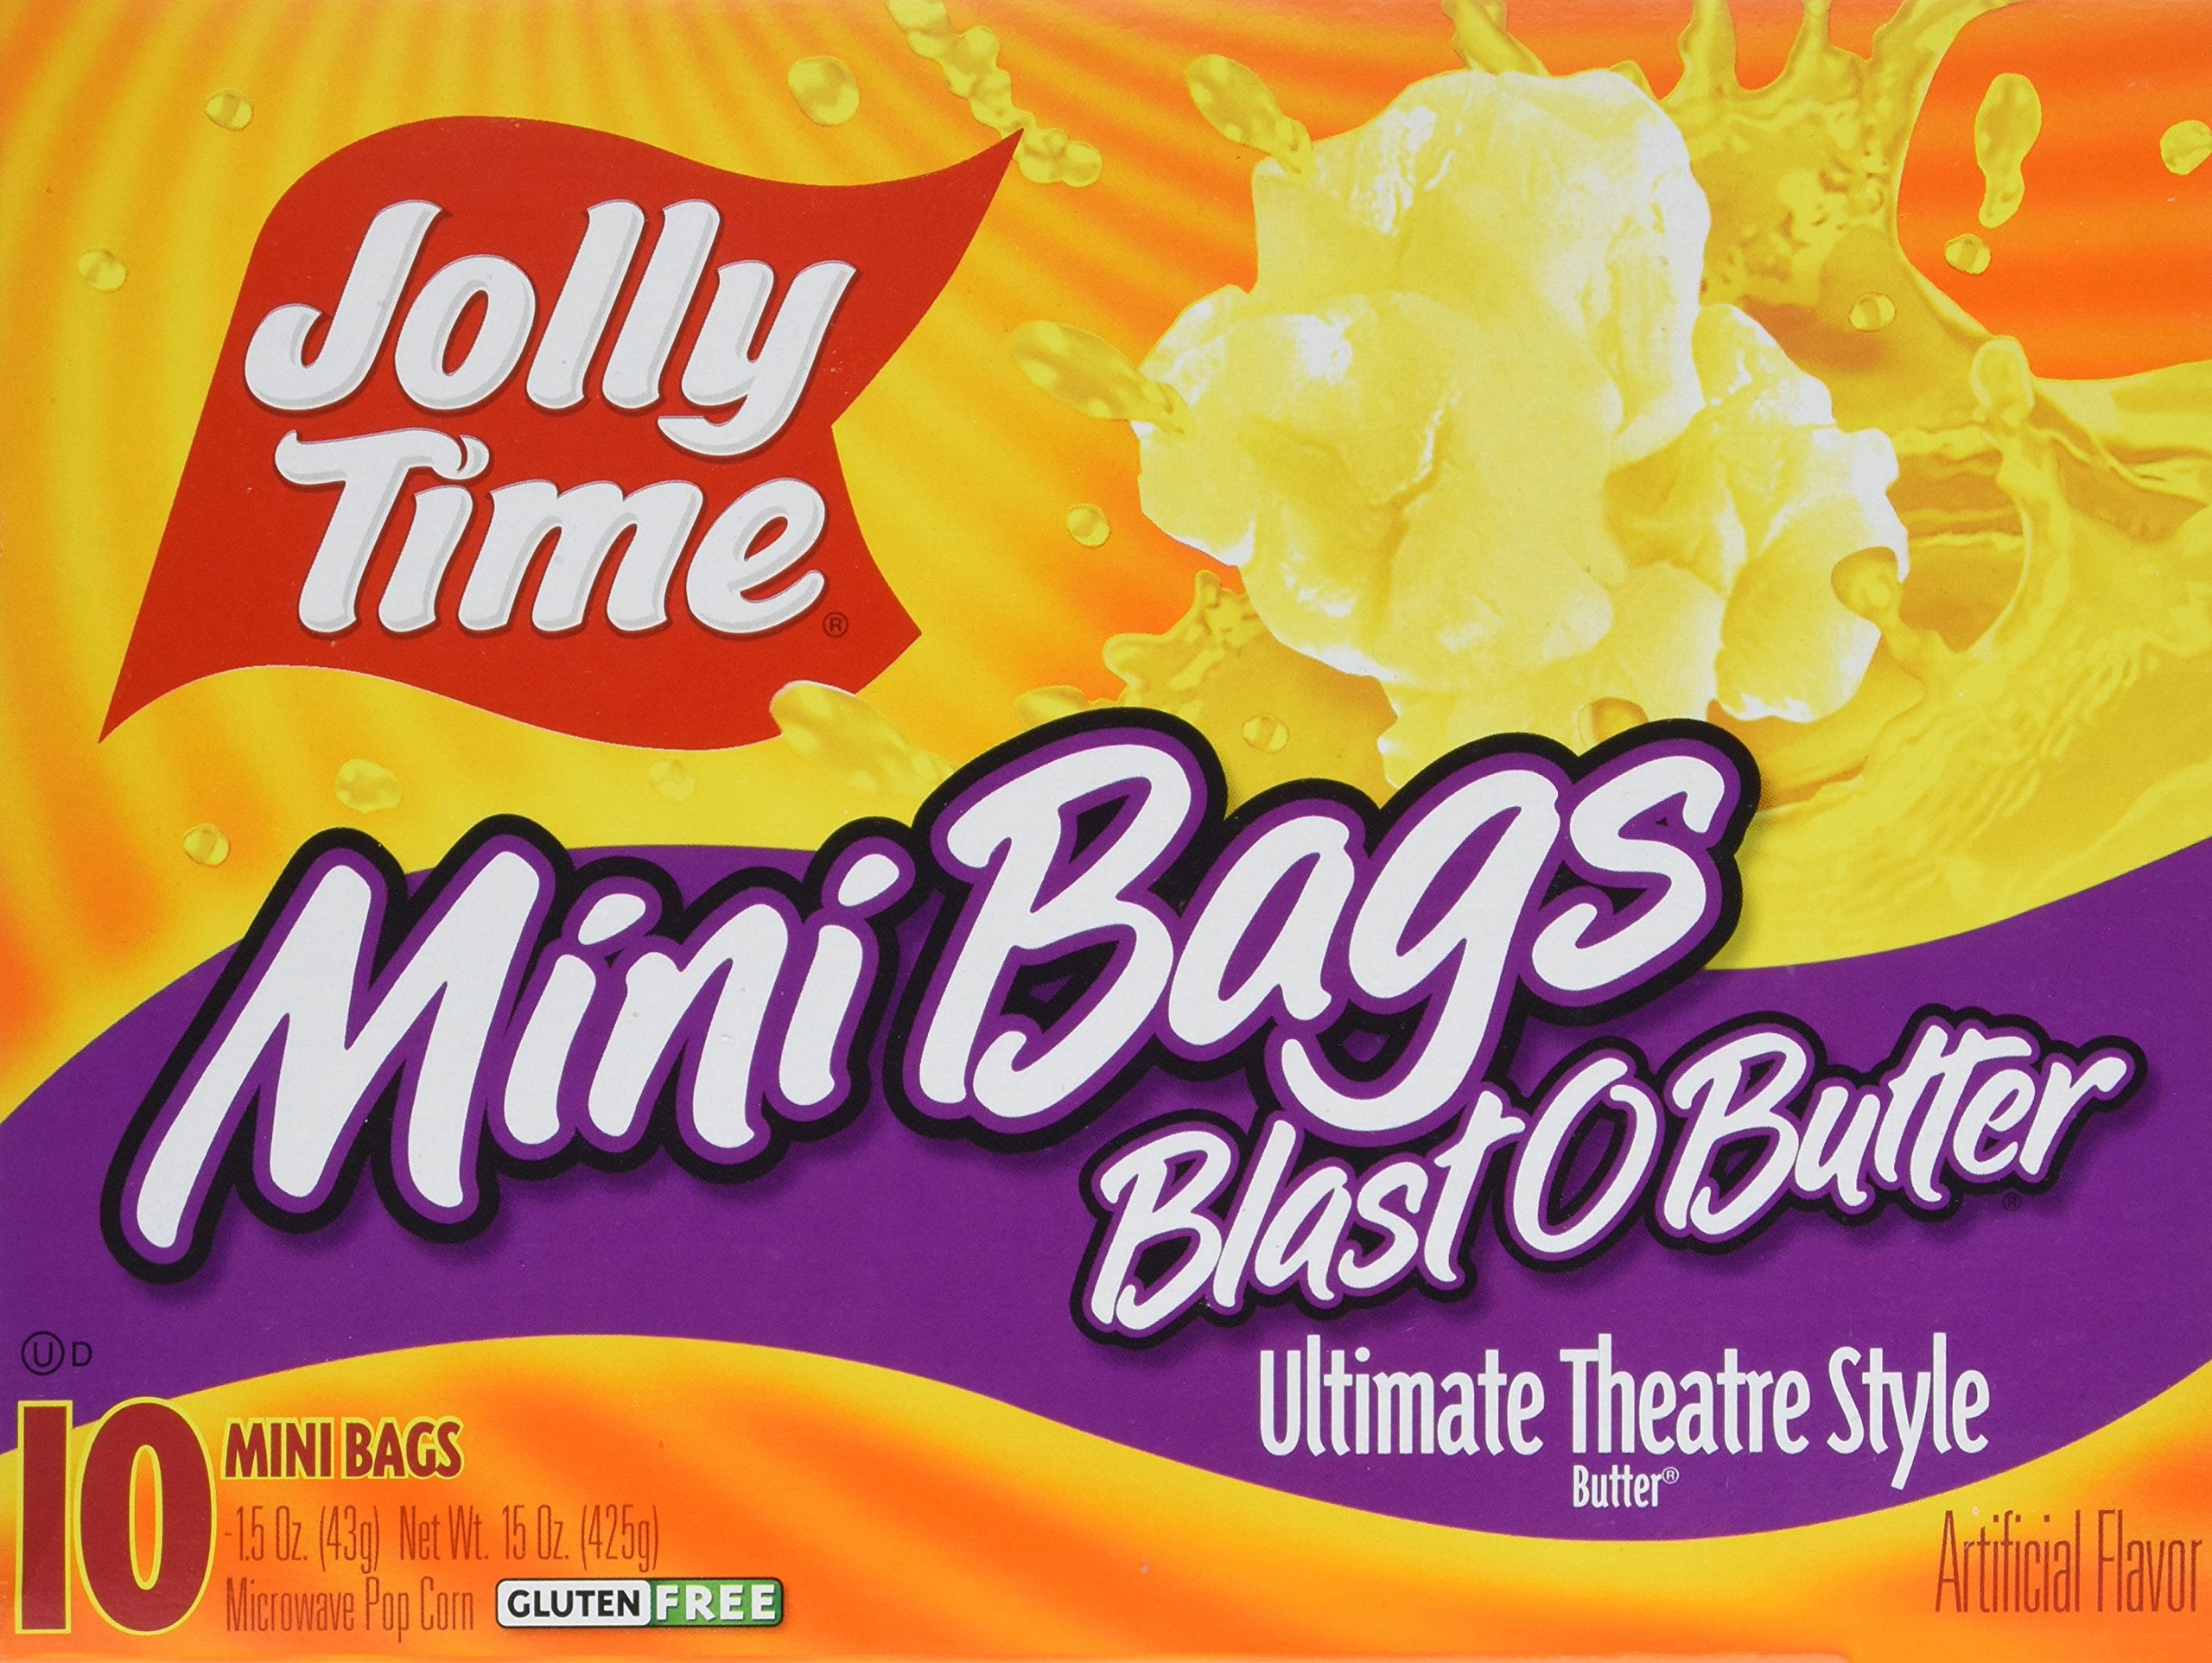 Jolly Time Blast O Butter Movie Theater Microwave Popcorn Single Portion Mini Bags, 10-Count Boxes, 15 oz (Pack of 3)